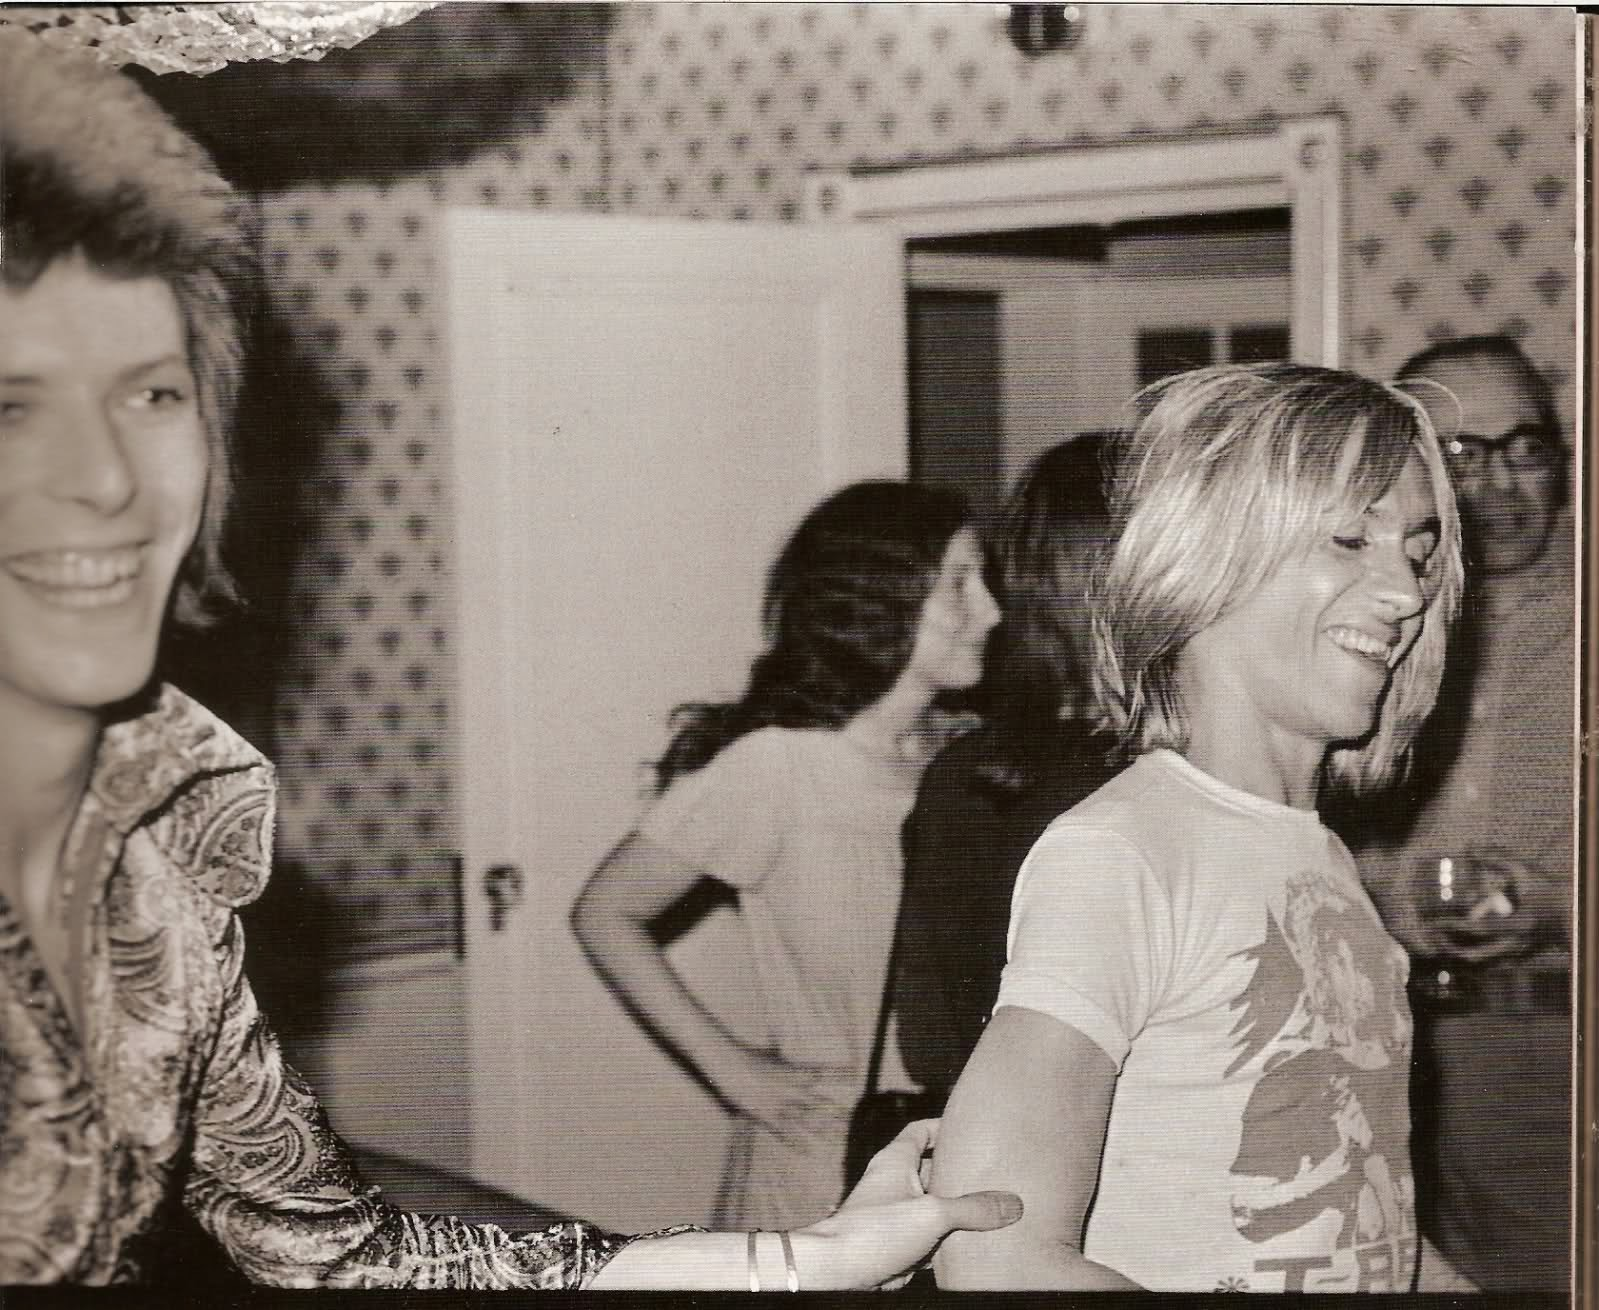 bowie and mick ronson relationship